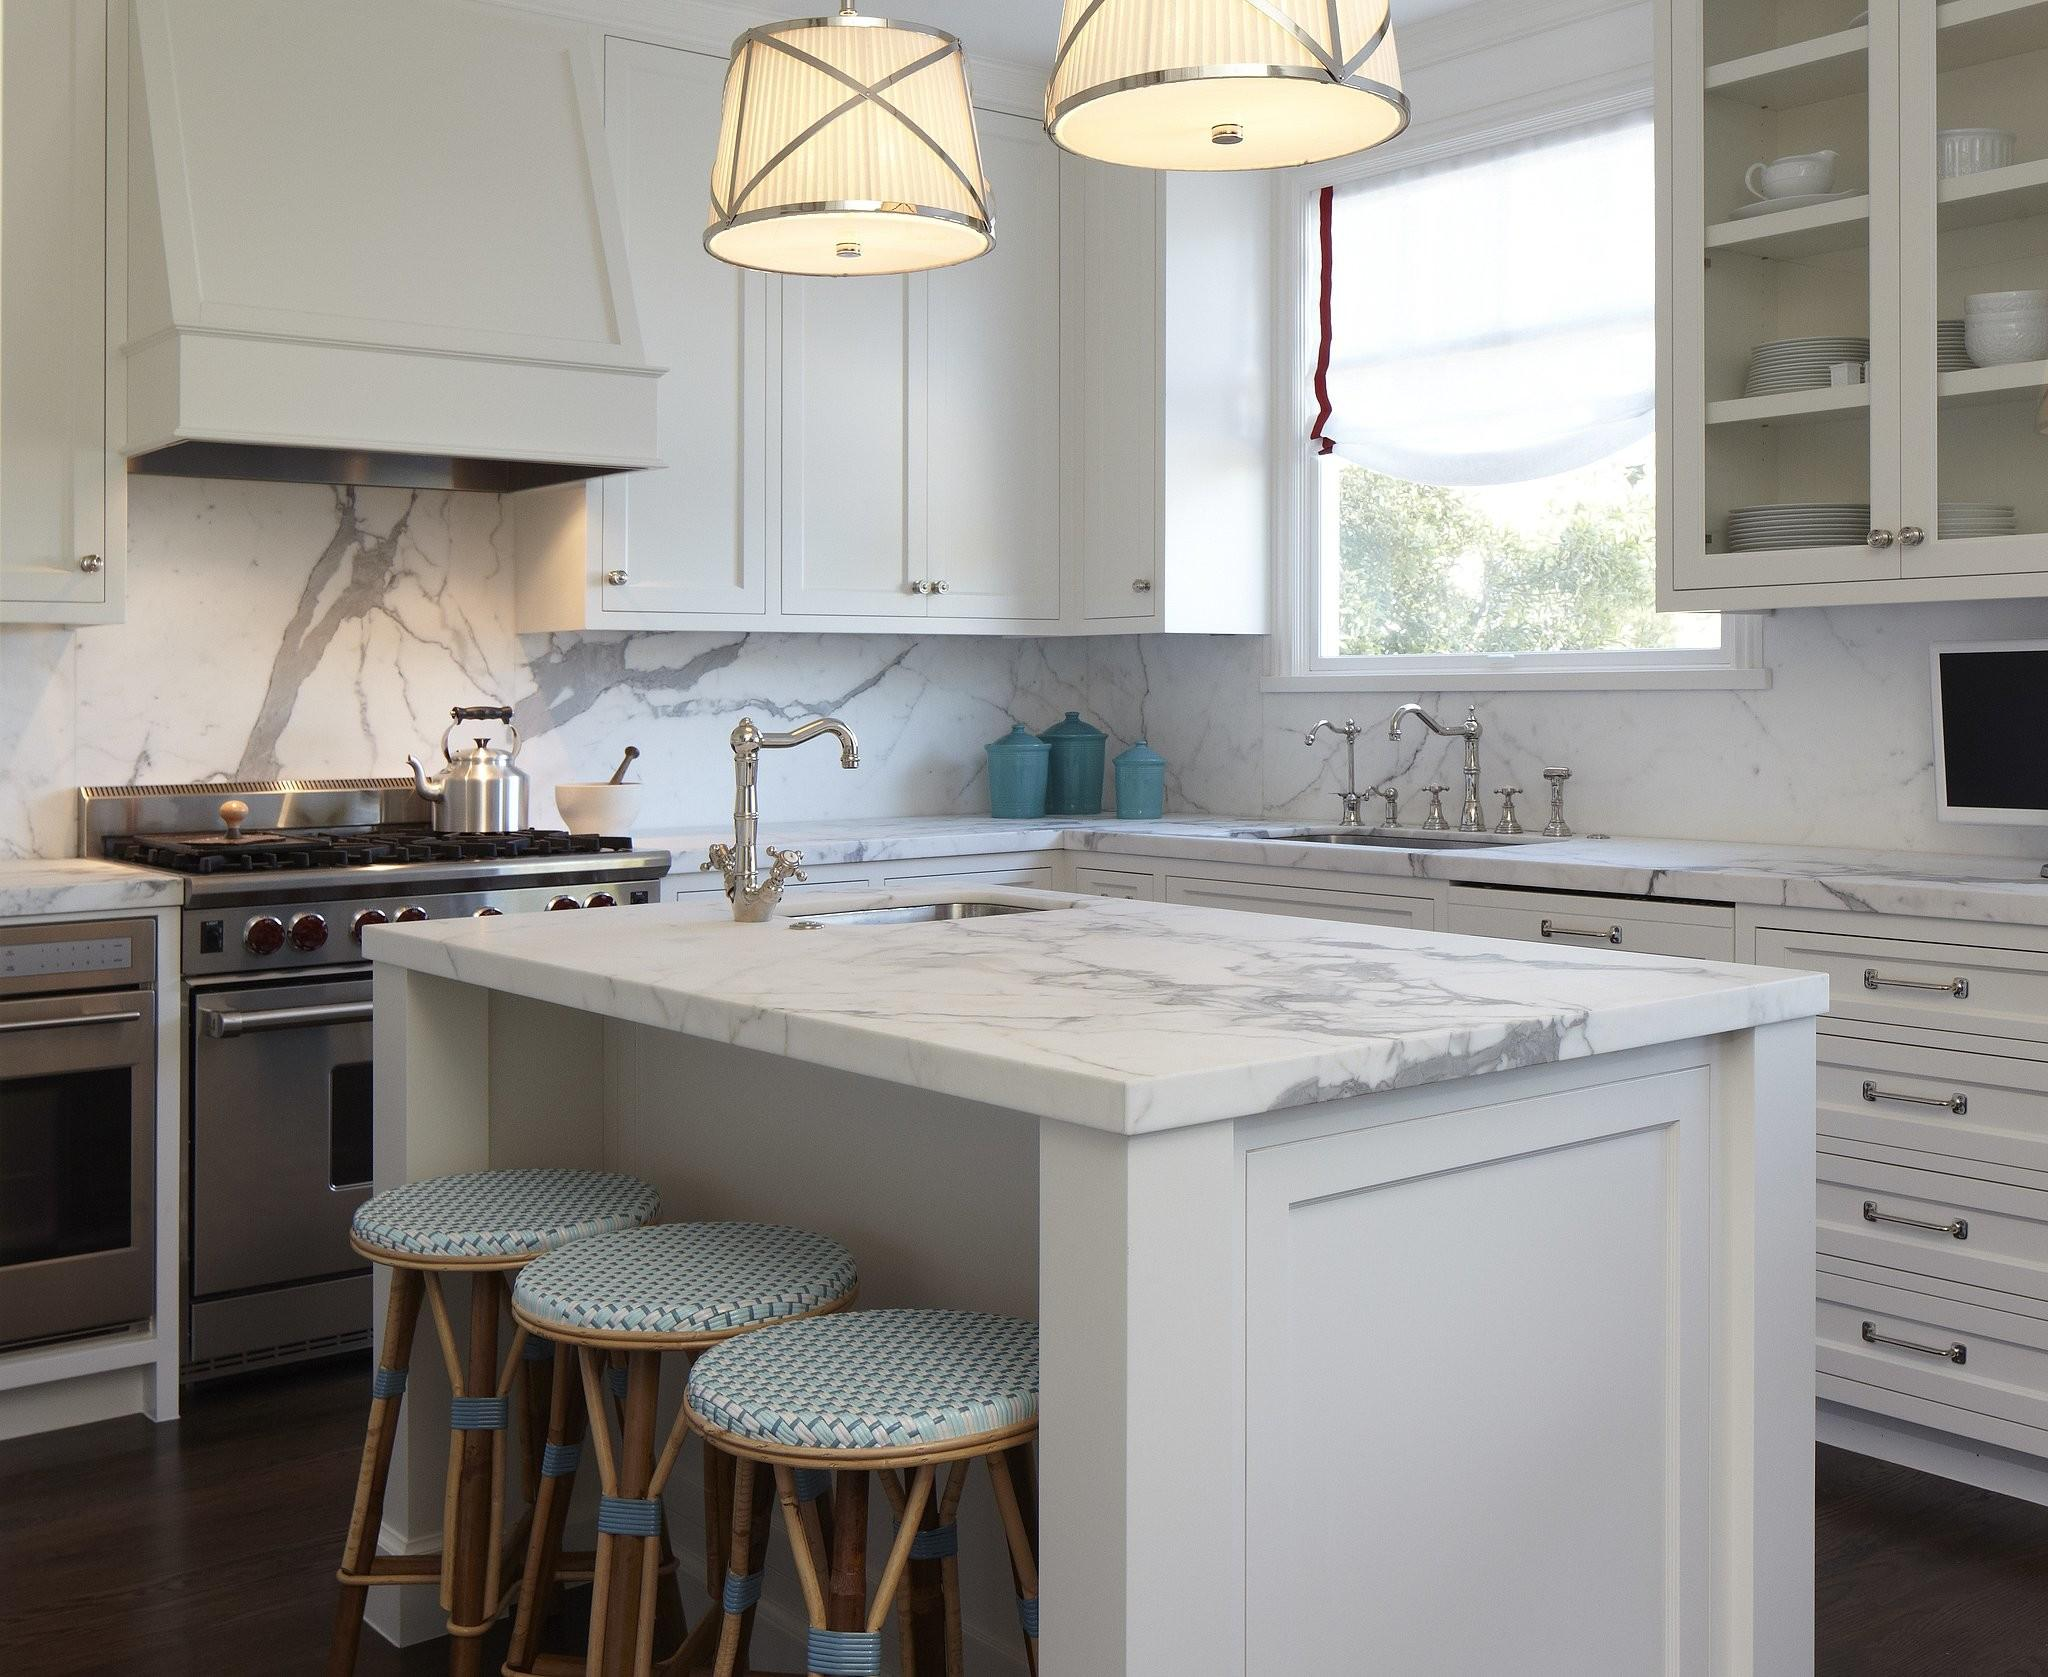 Honed Marble Island Provides Additional Work Surface